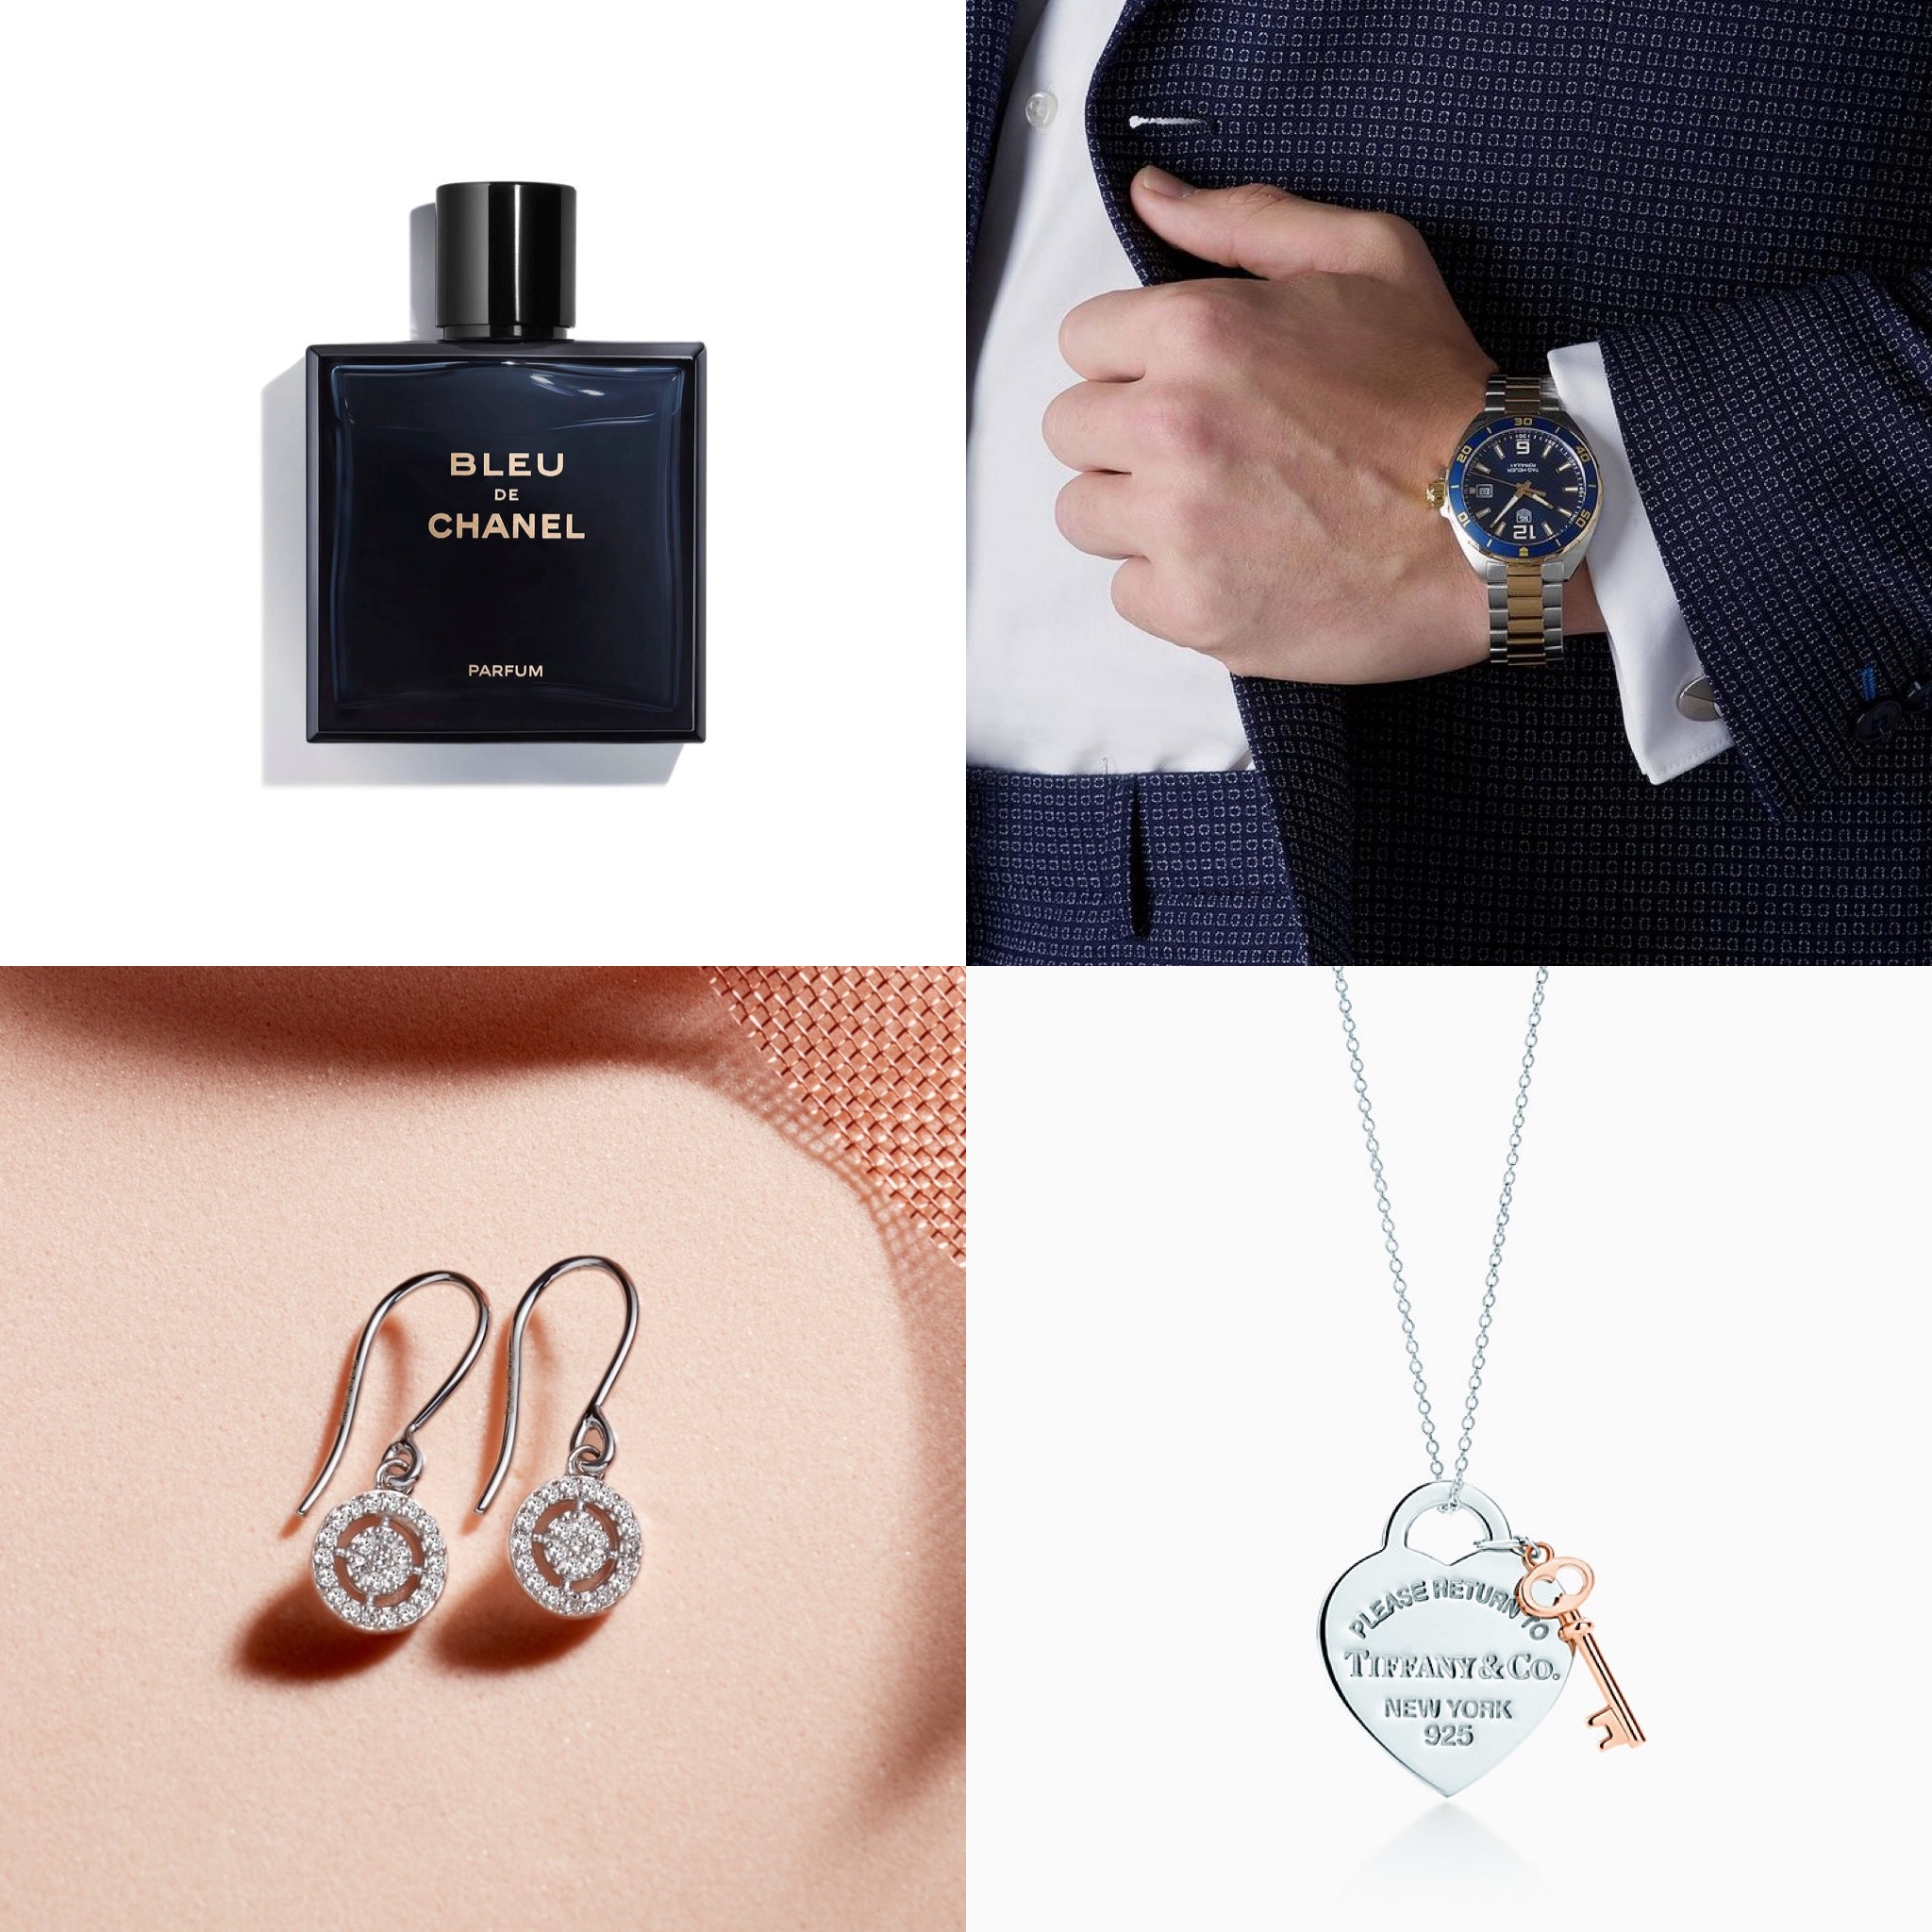 Aftershave, a mans watch, a pair of diamond earrings and a tiffany necklace.